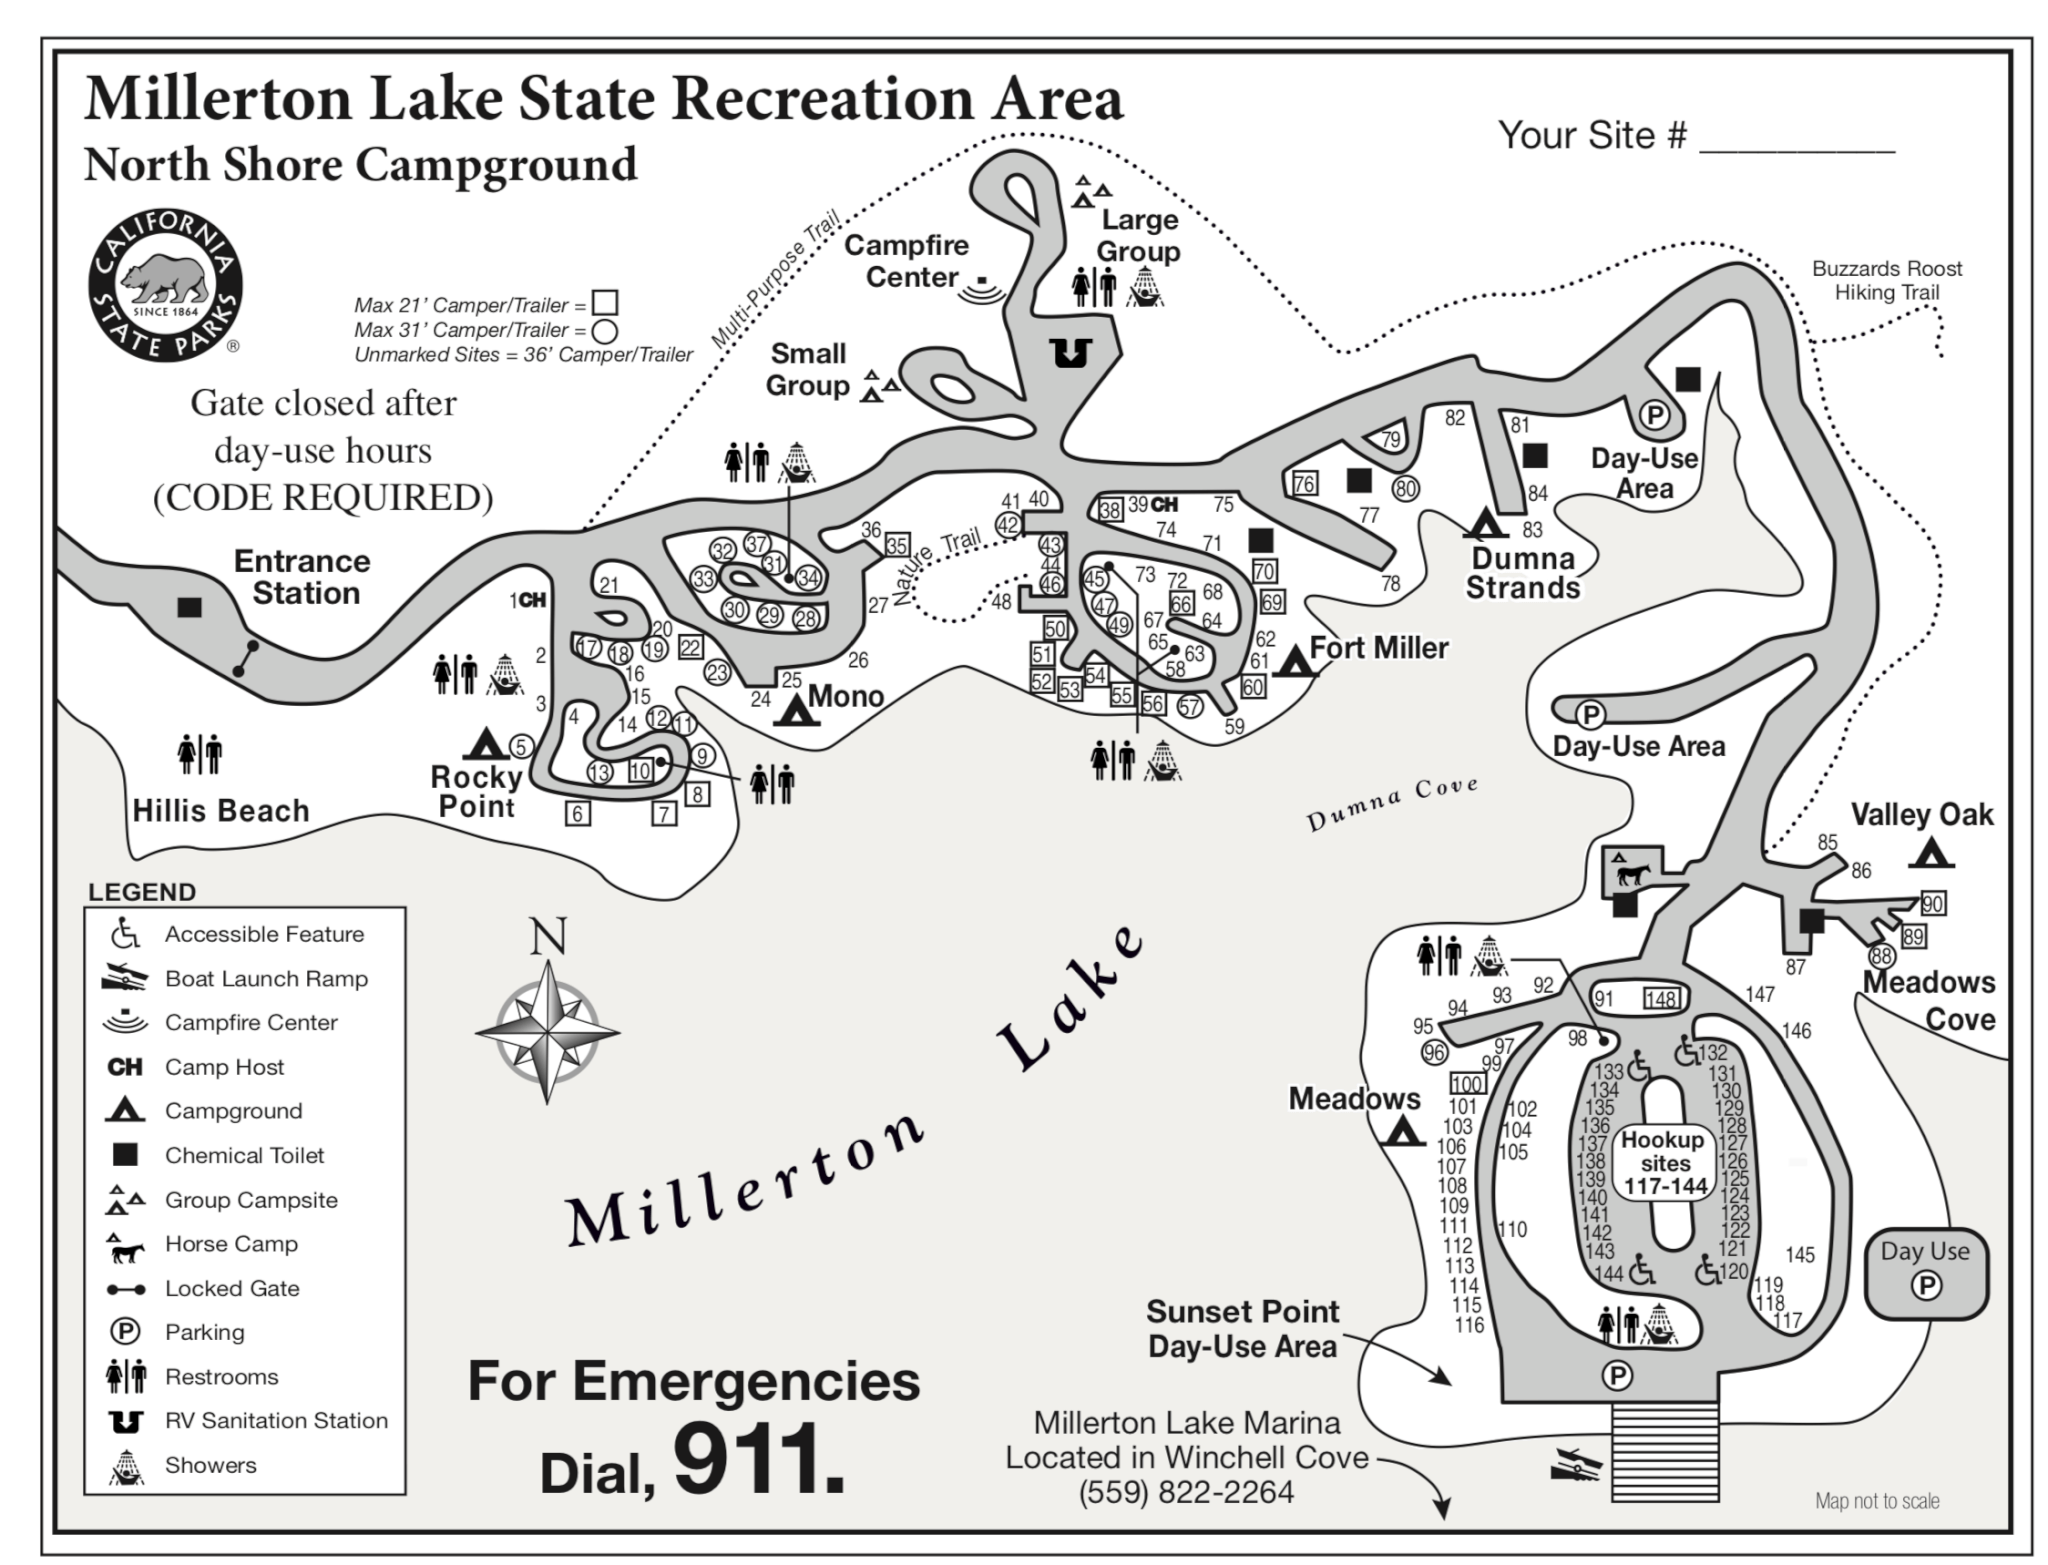 Millerton-Lake-Campground-Map-1 Map Of Northern California on map of phoenix 101, map of california coast, map of oregon 101,